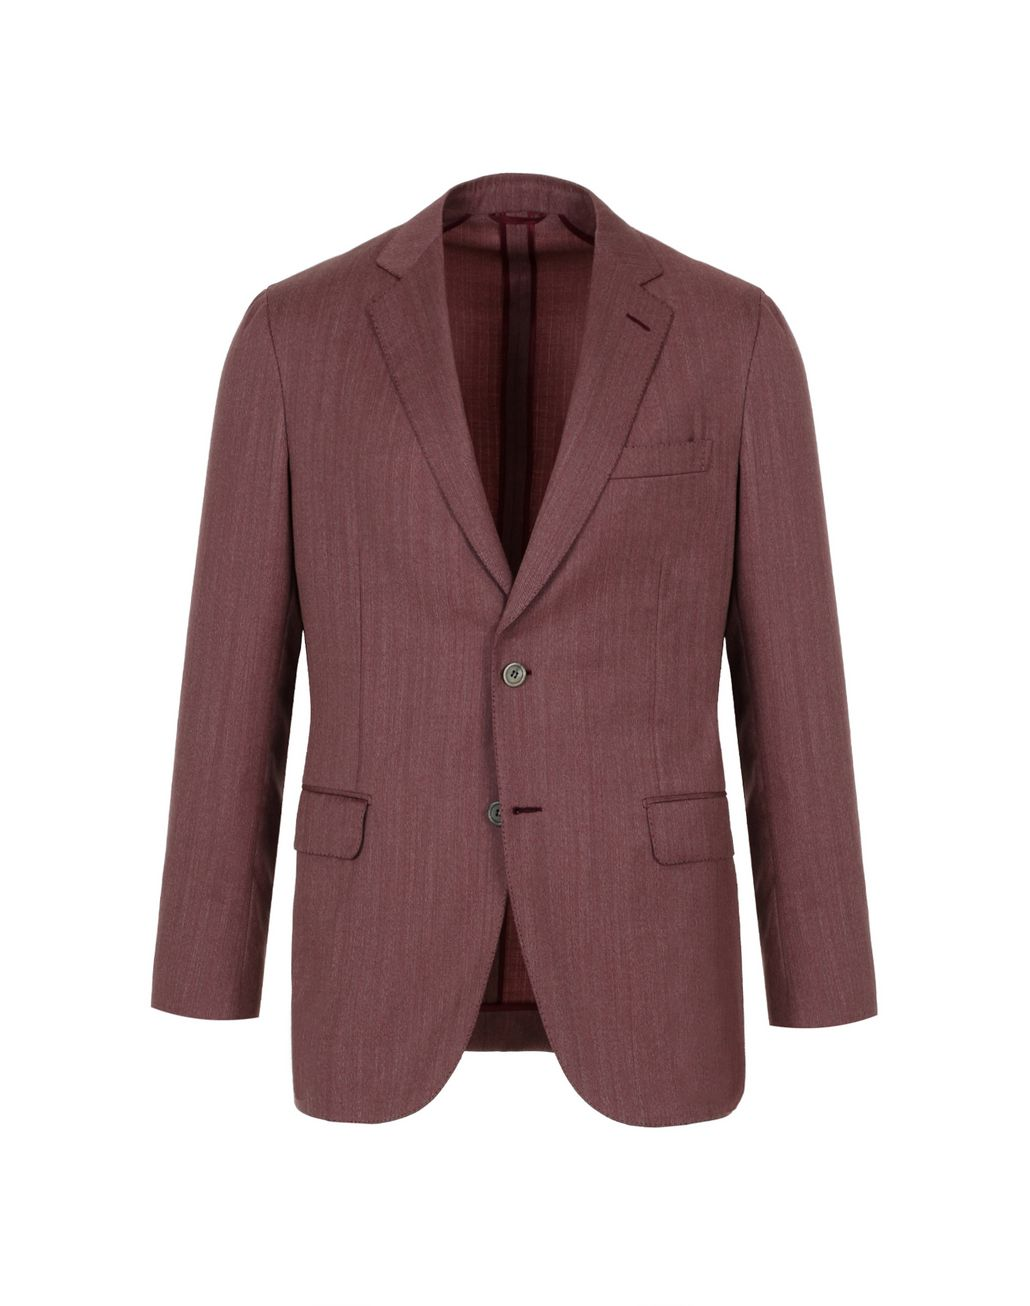 BRIONI Giacca Plume Bordeaux con Motivo a Spina di Pesce Suits & Jackets [*** pickupInStoreShippingNotGuaranteed_info ***] f